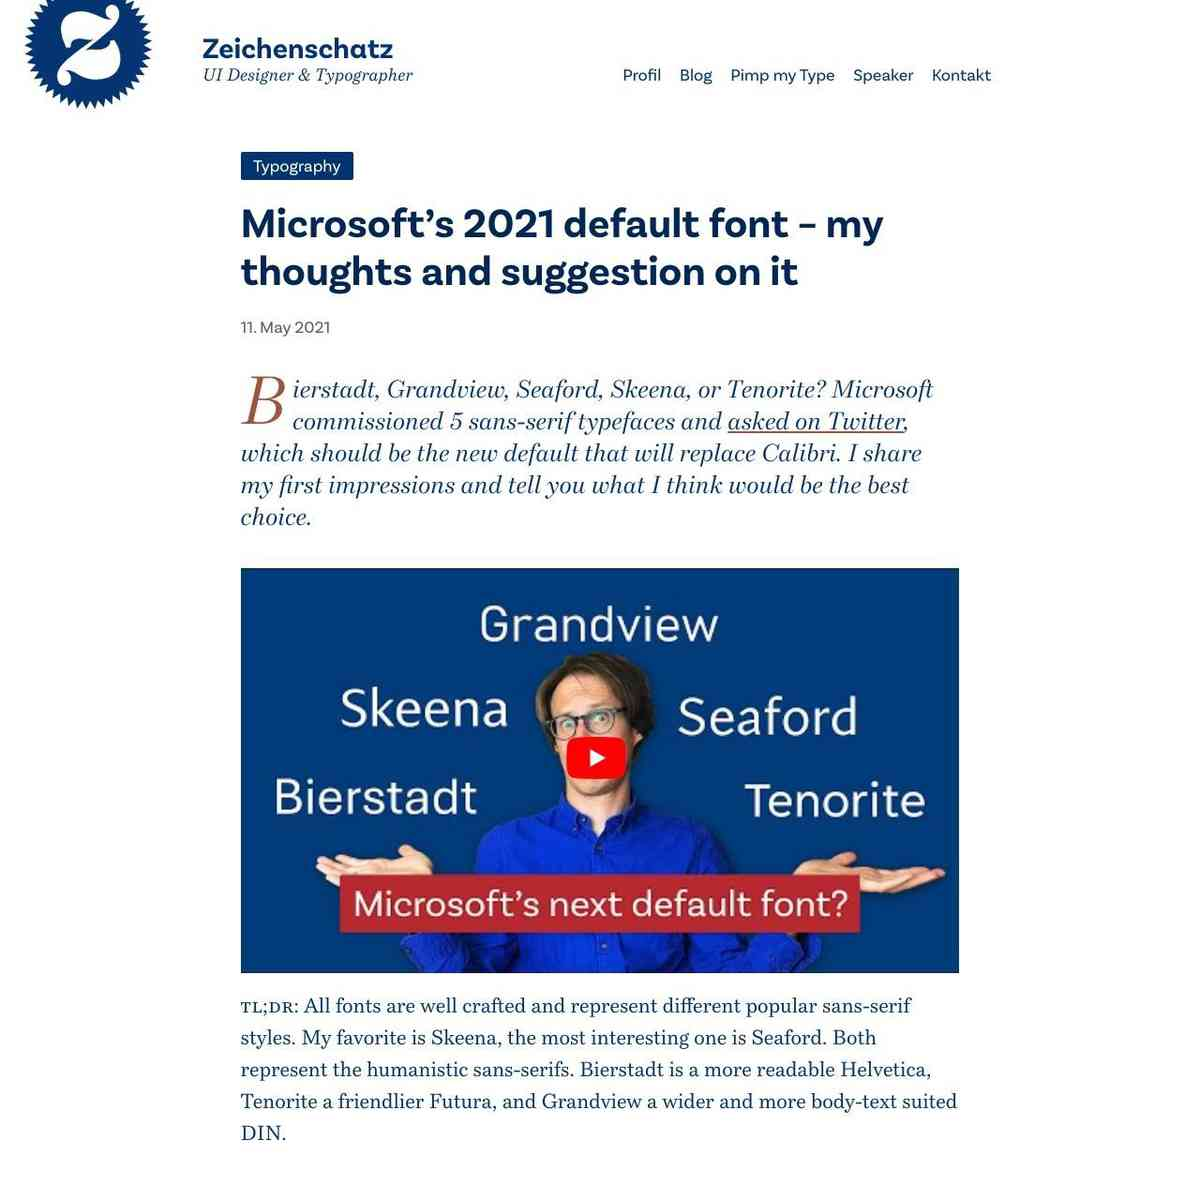 Microsoft's 2021 default font – my thoughts and suggestion on it – Zeichenschatz